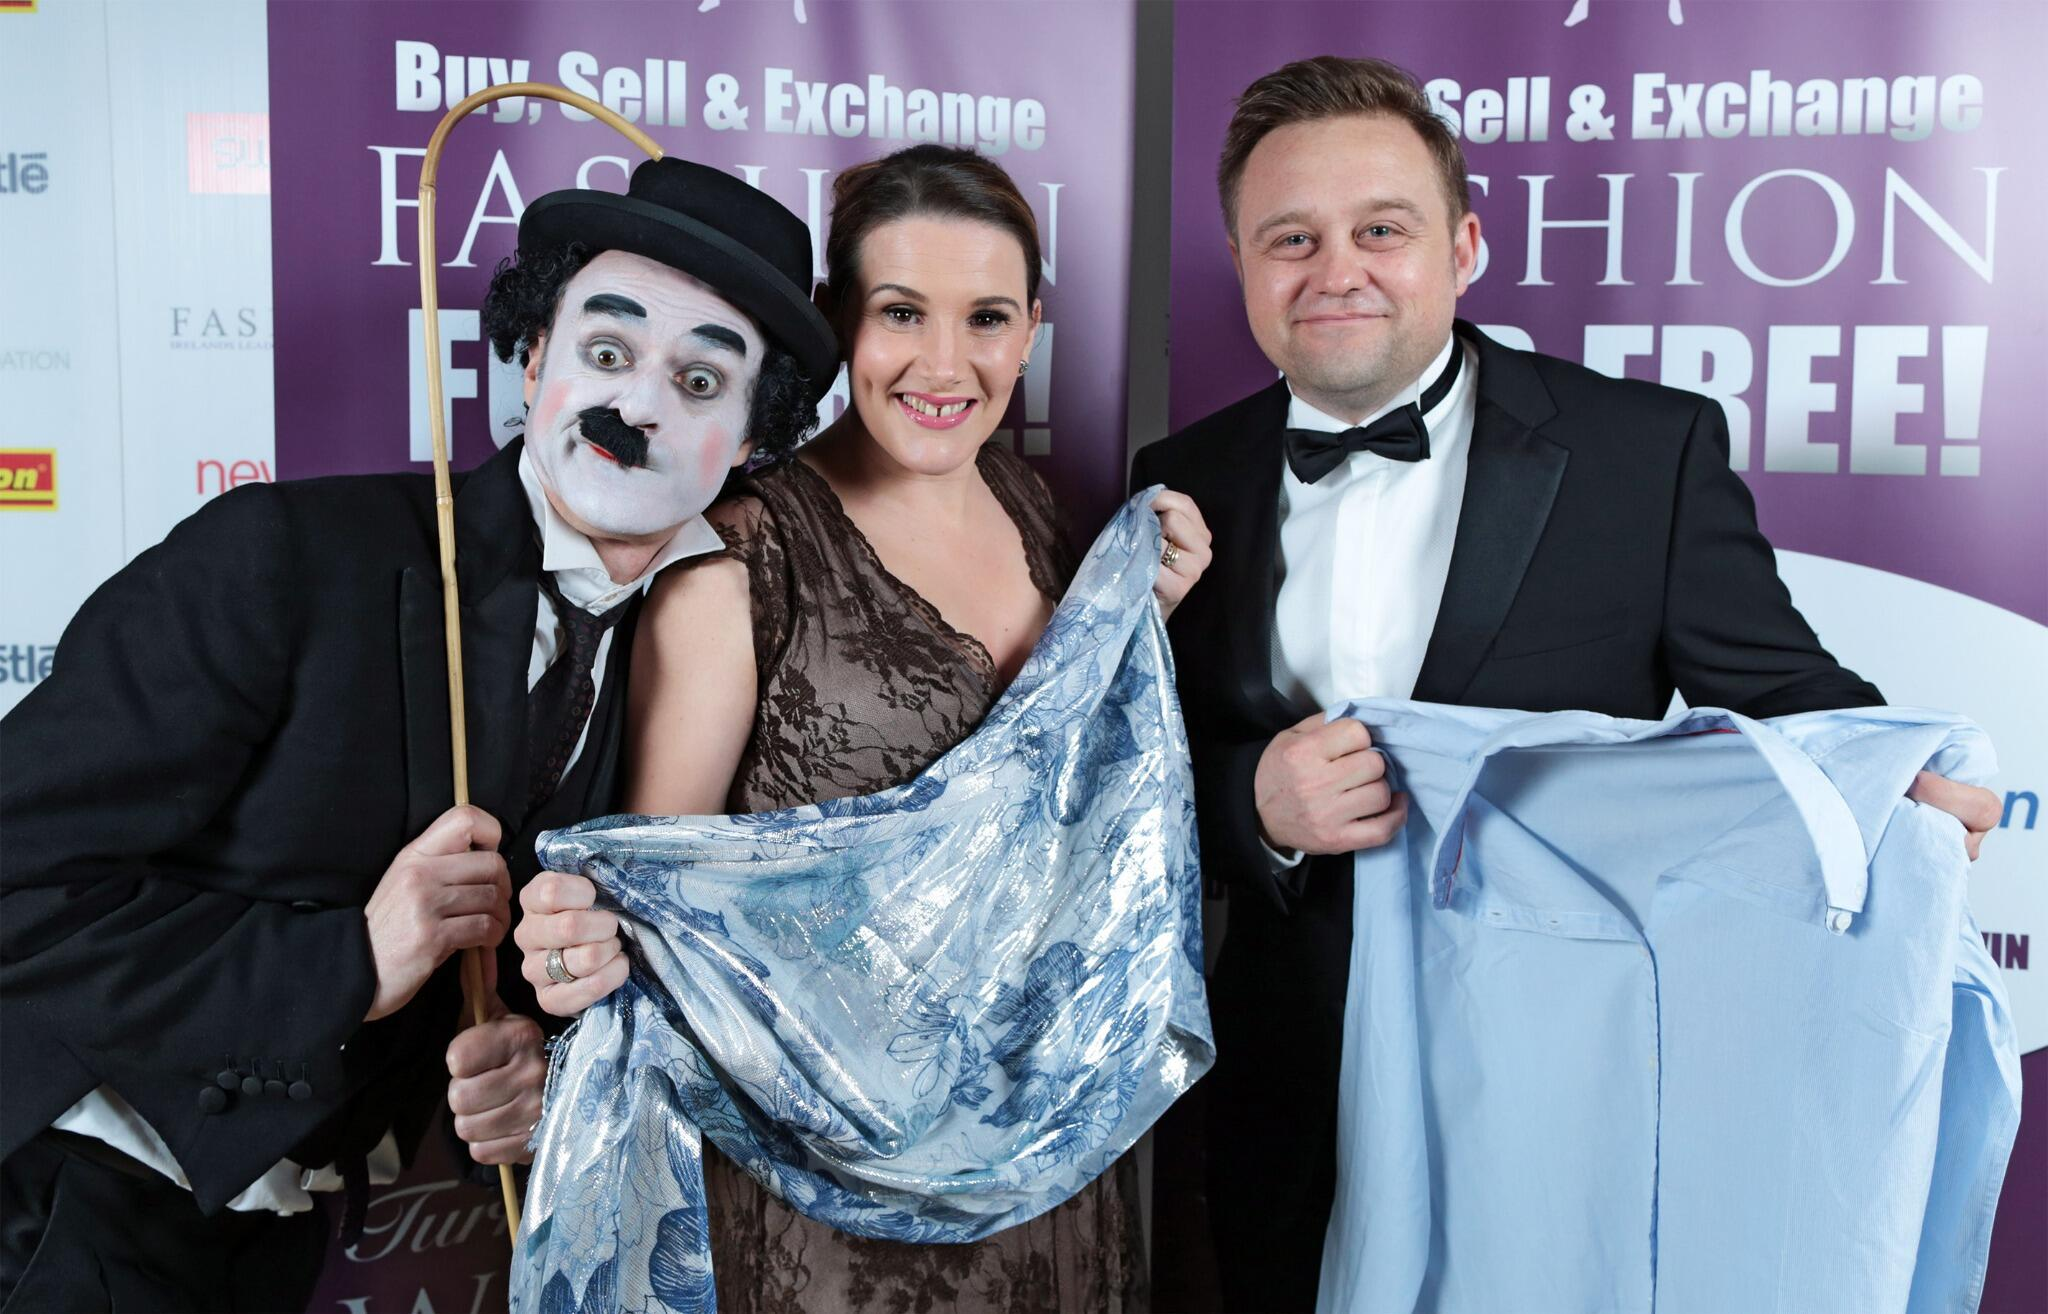 RT @fashion_ie: X-Factor Sam Bailey gives signed clothing to help Irish Autism  Action Click here http://t.co/F5ZK5veu7V PLZ RT xx http://t…